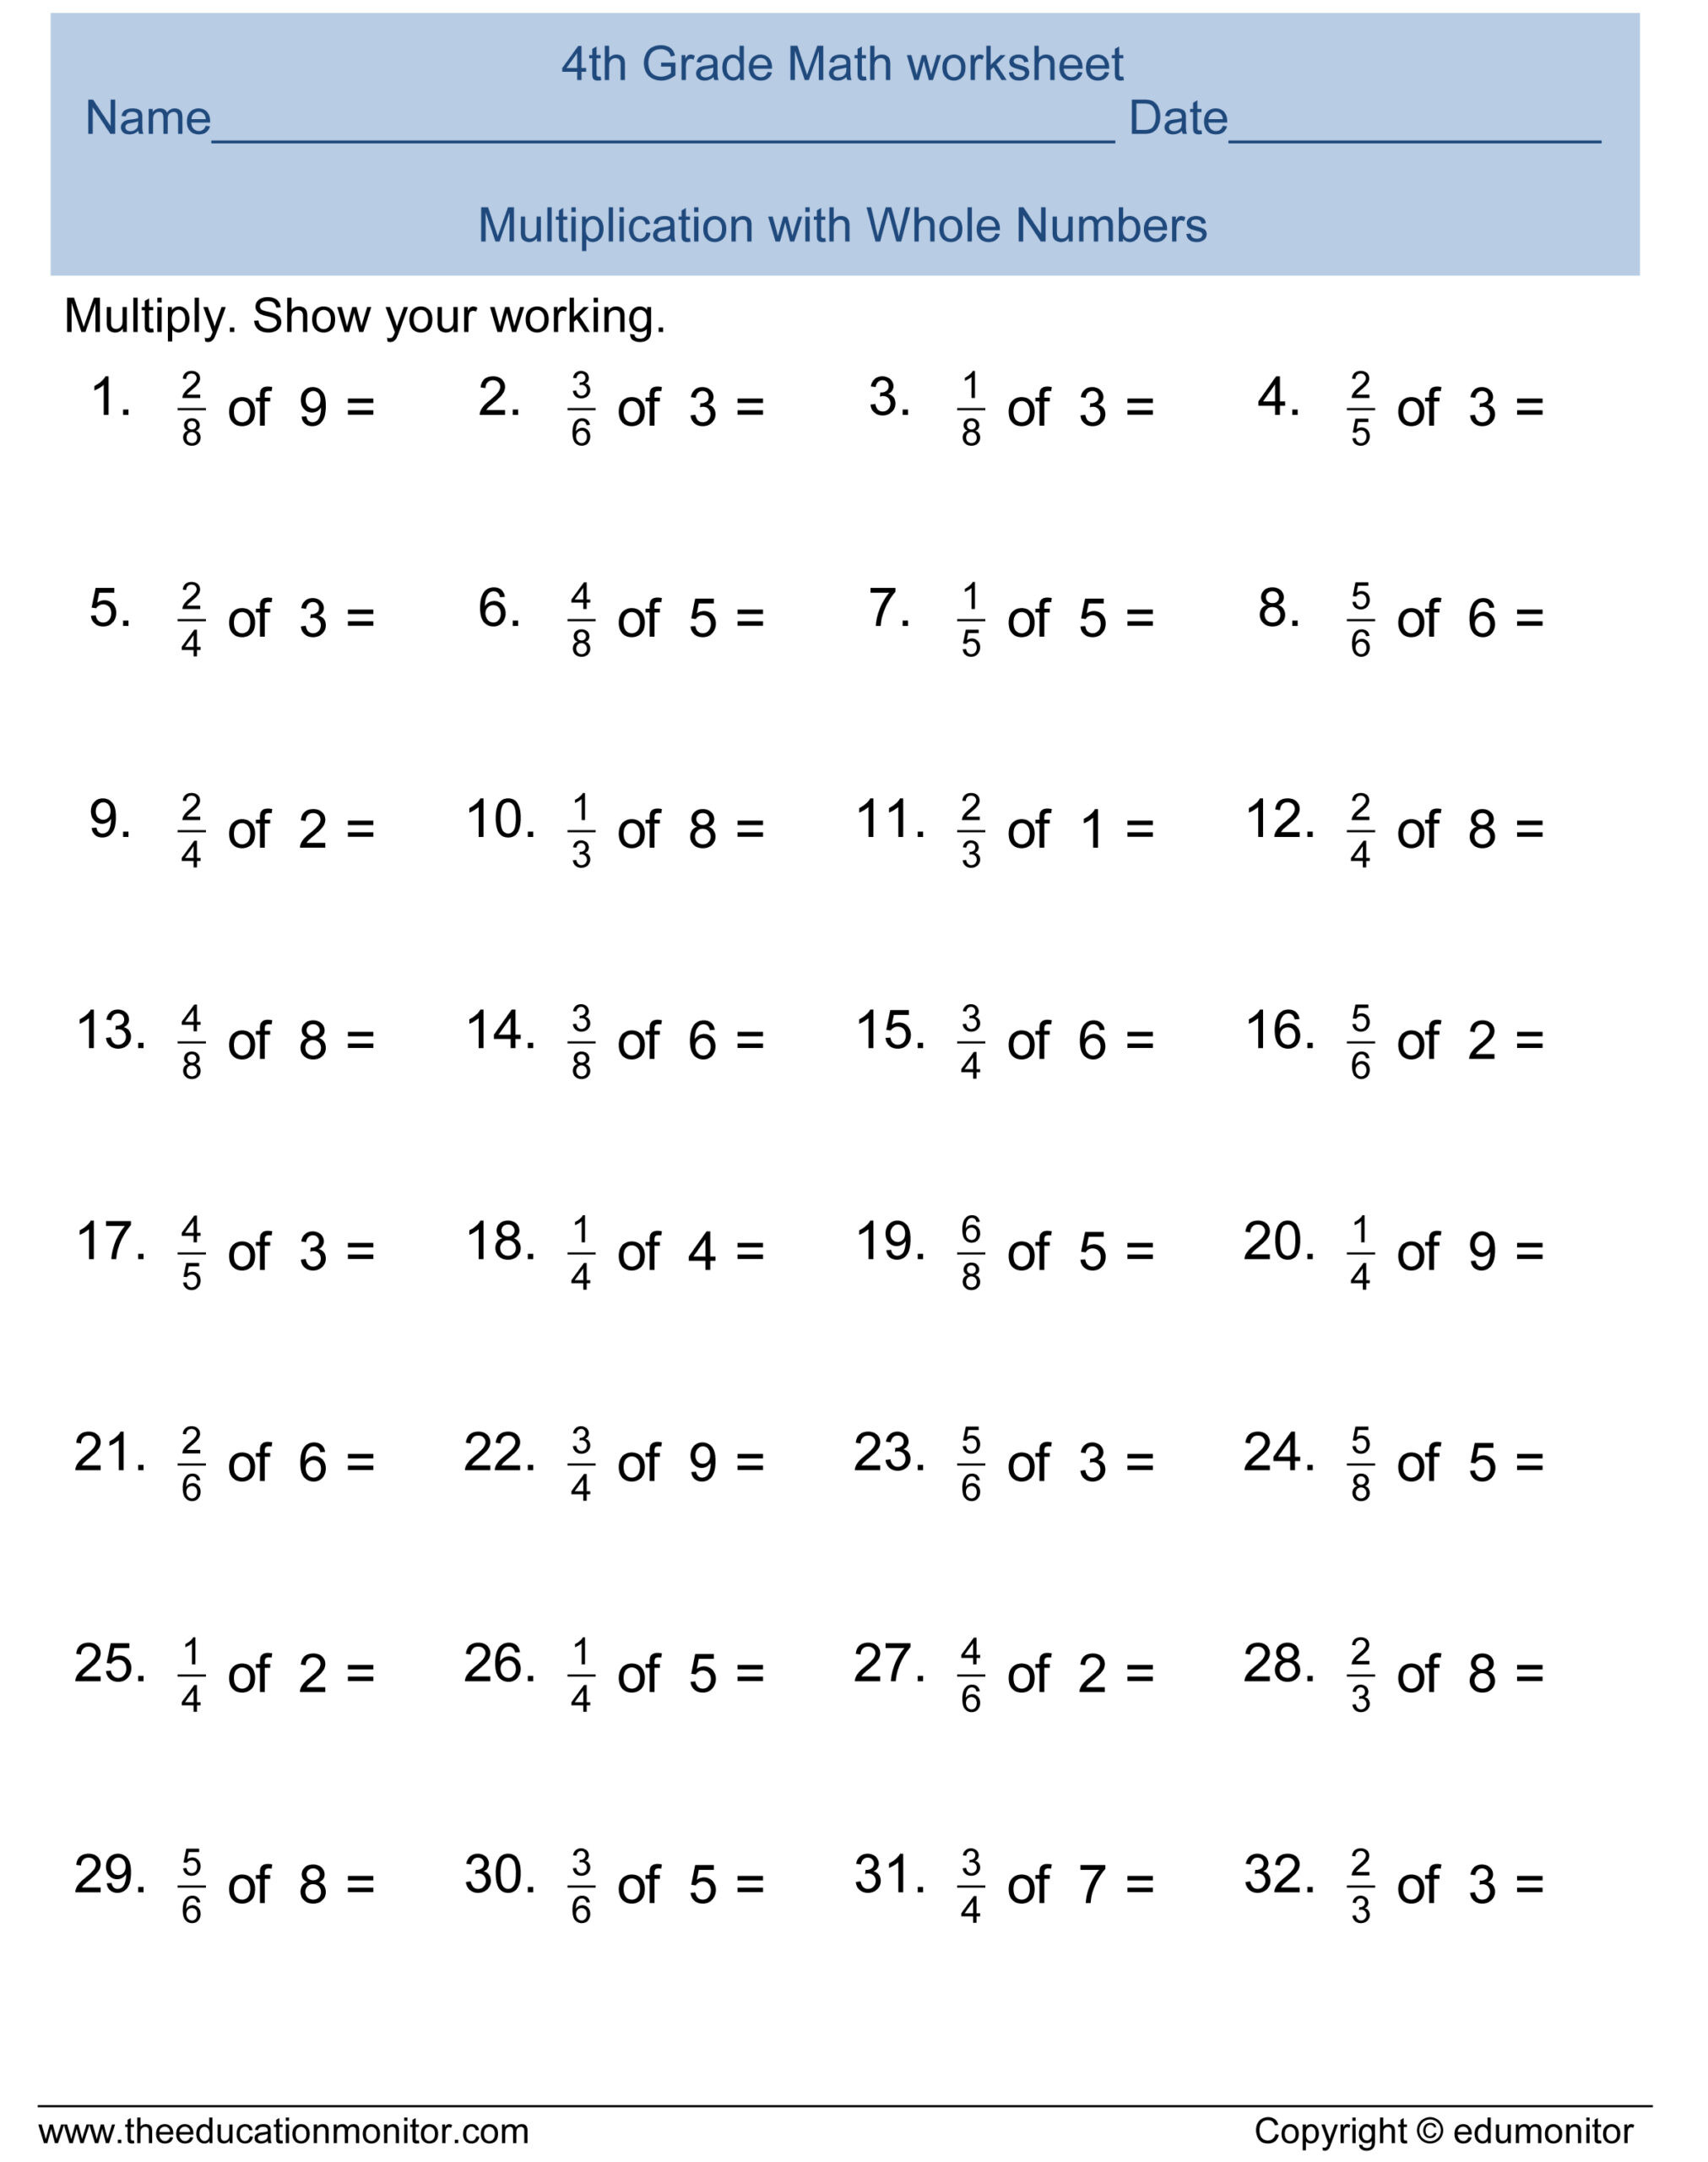 Ordering Fractions Worksheet 4th Grade Free 4th Grade Fractions Math Worksheets and Printables